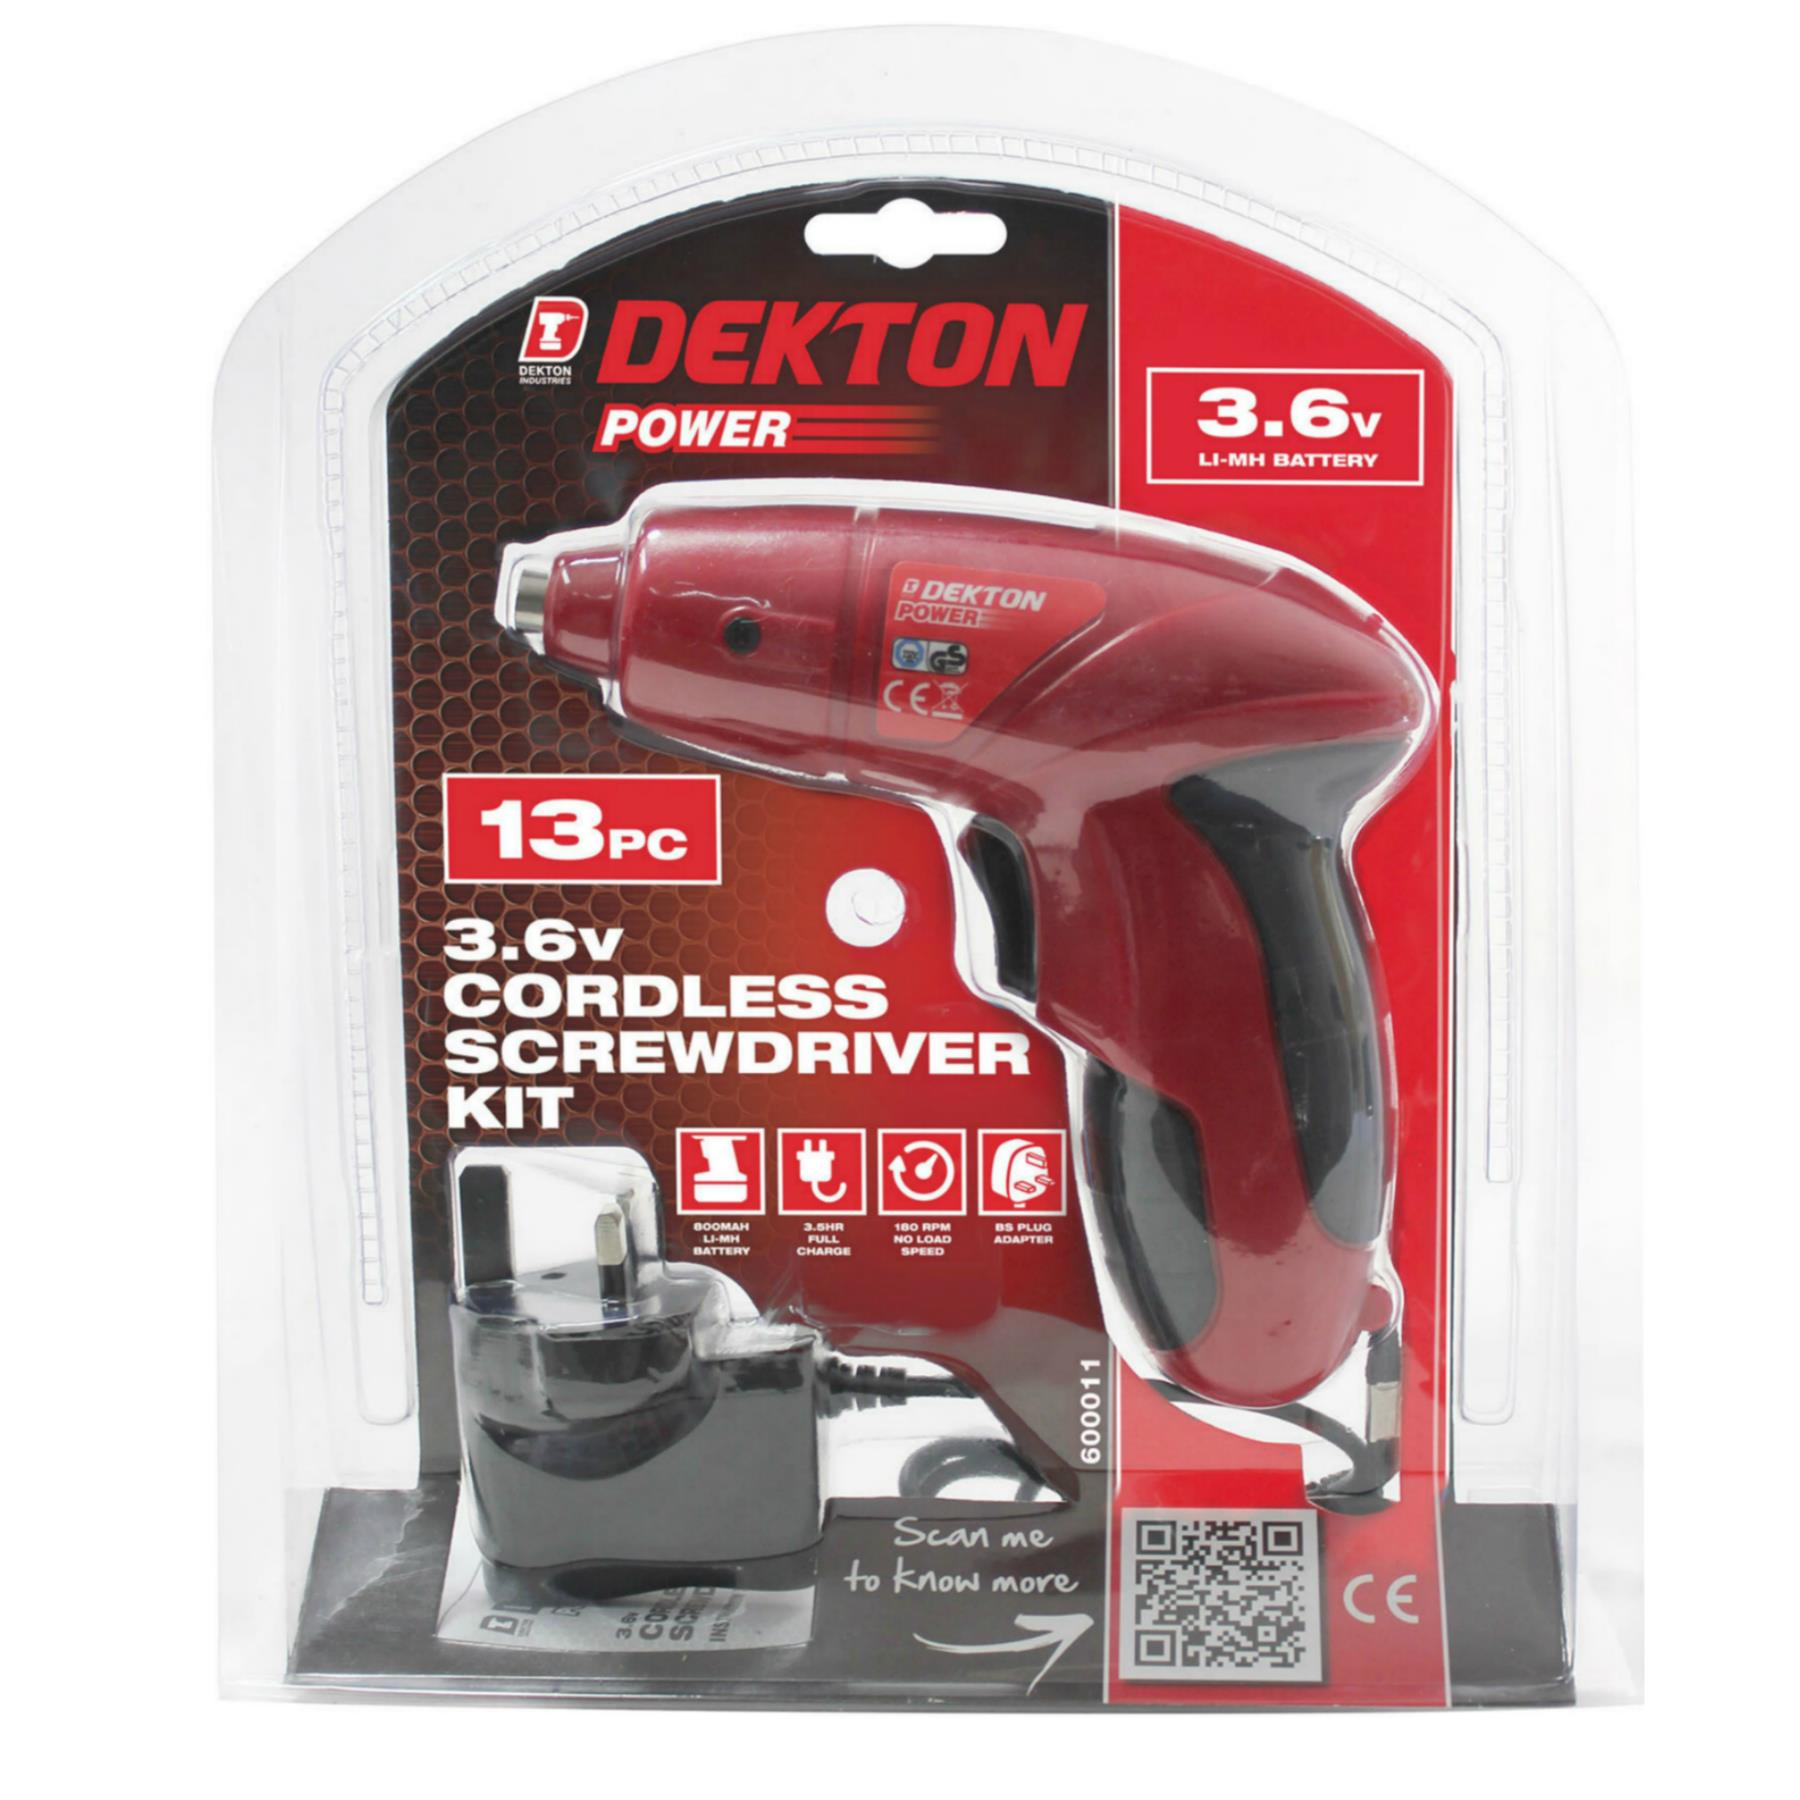 Dekton 13pc Rechargeable Cordless Screwdriver Set with Screw Bits and 3 Pin Plug